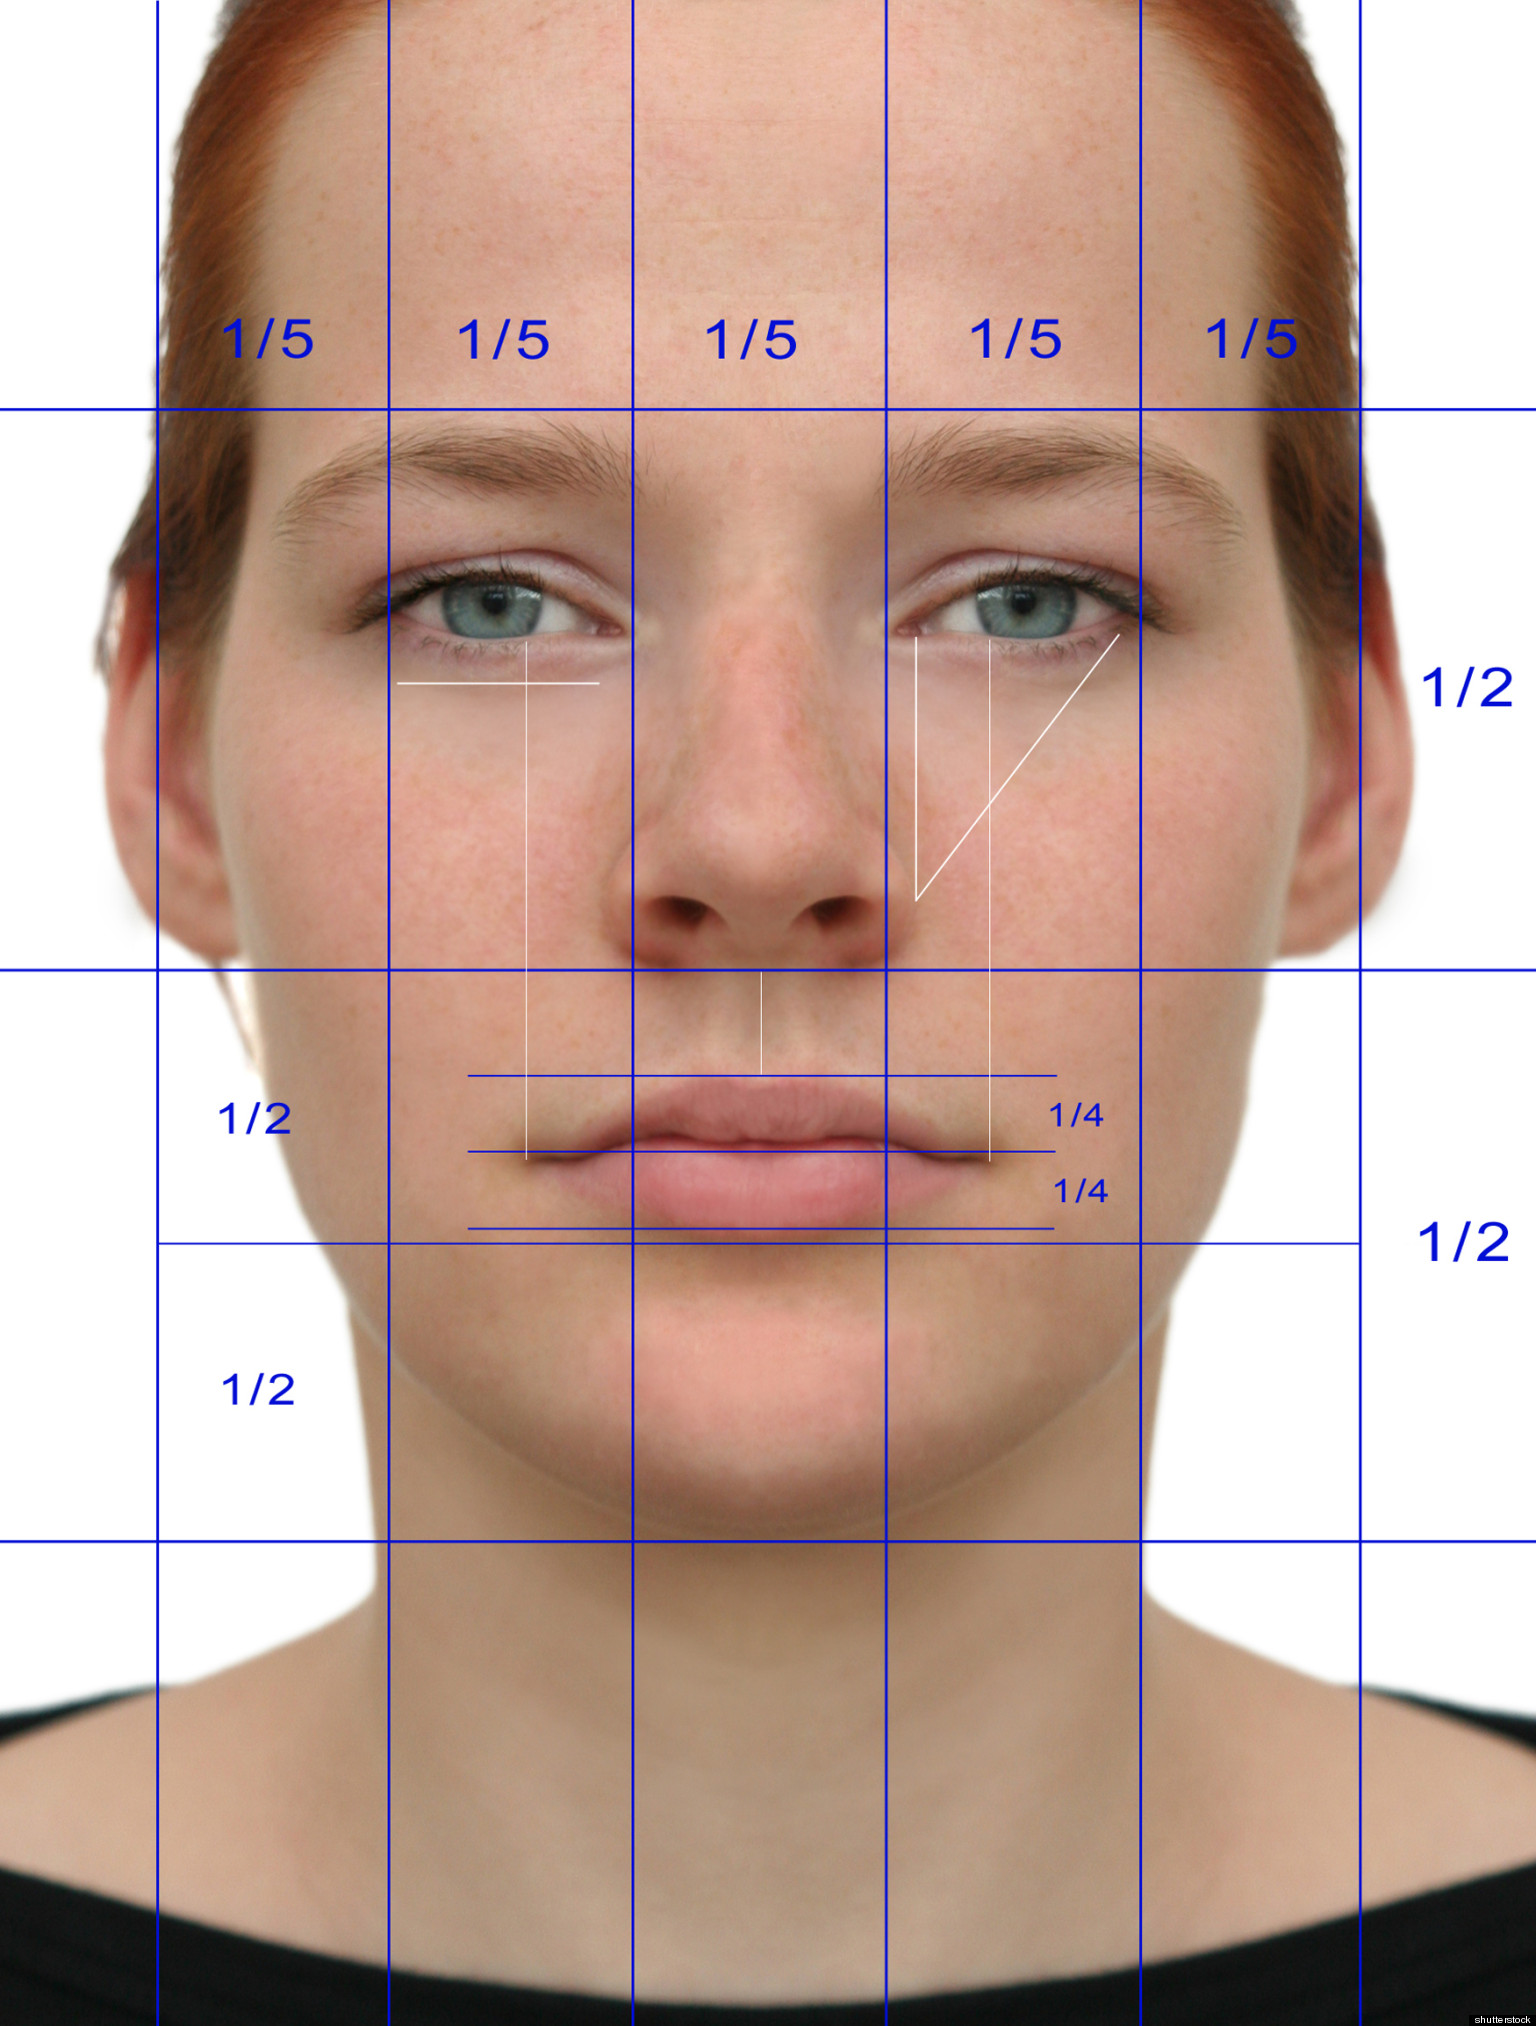 Beauty Studies Show Ratios Explain Human Attractiveness ...